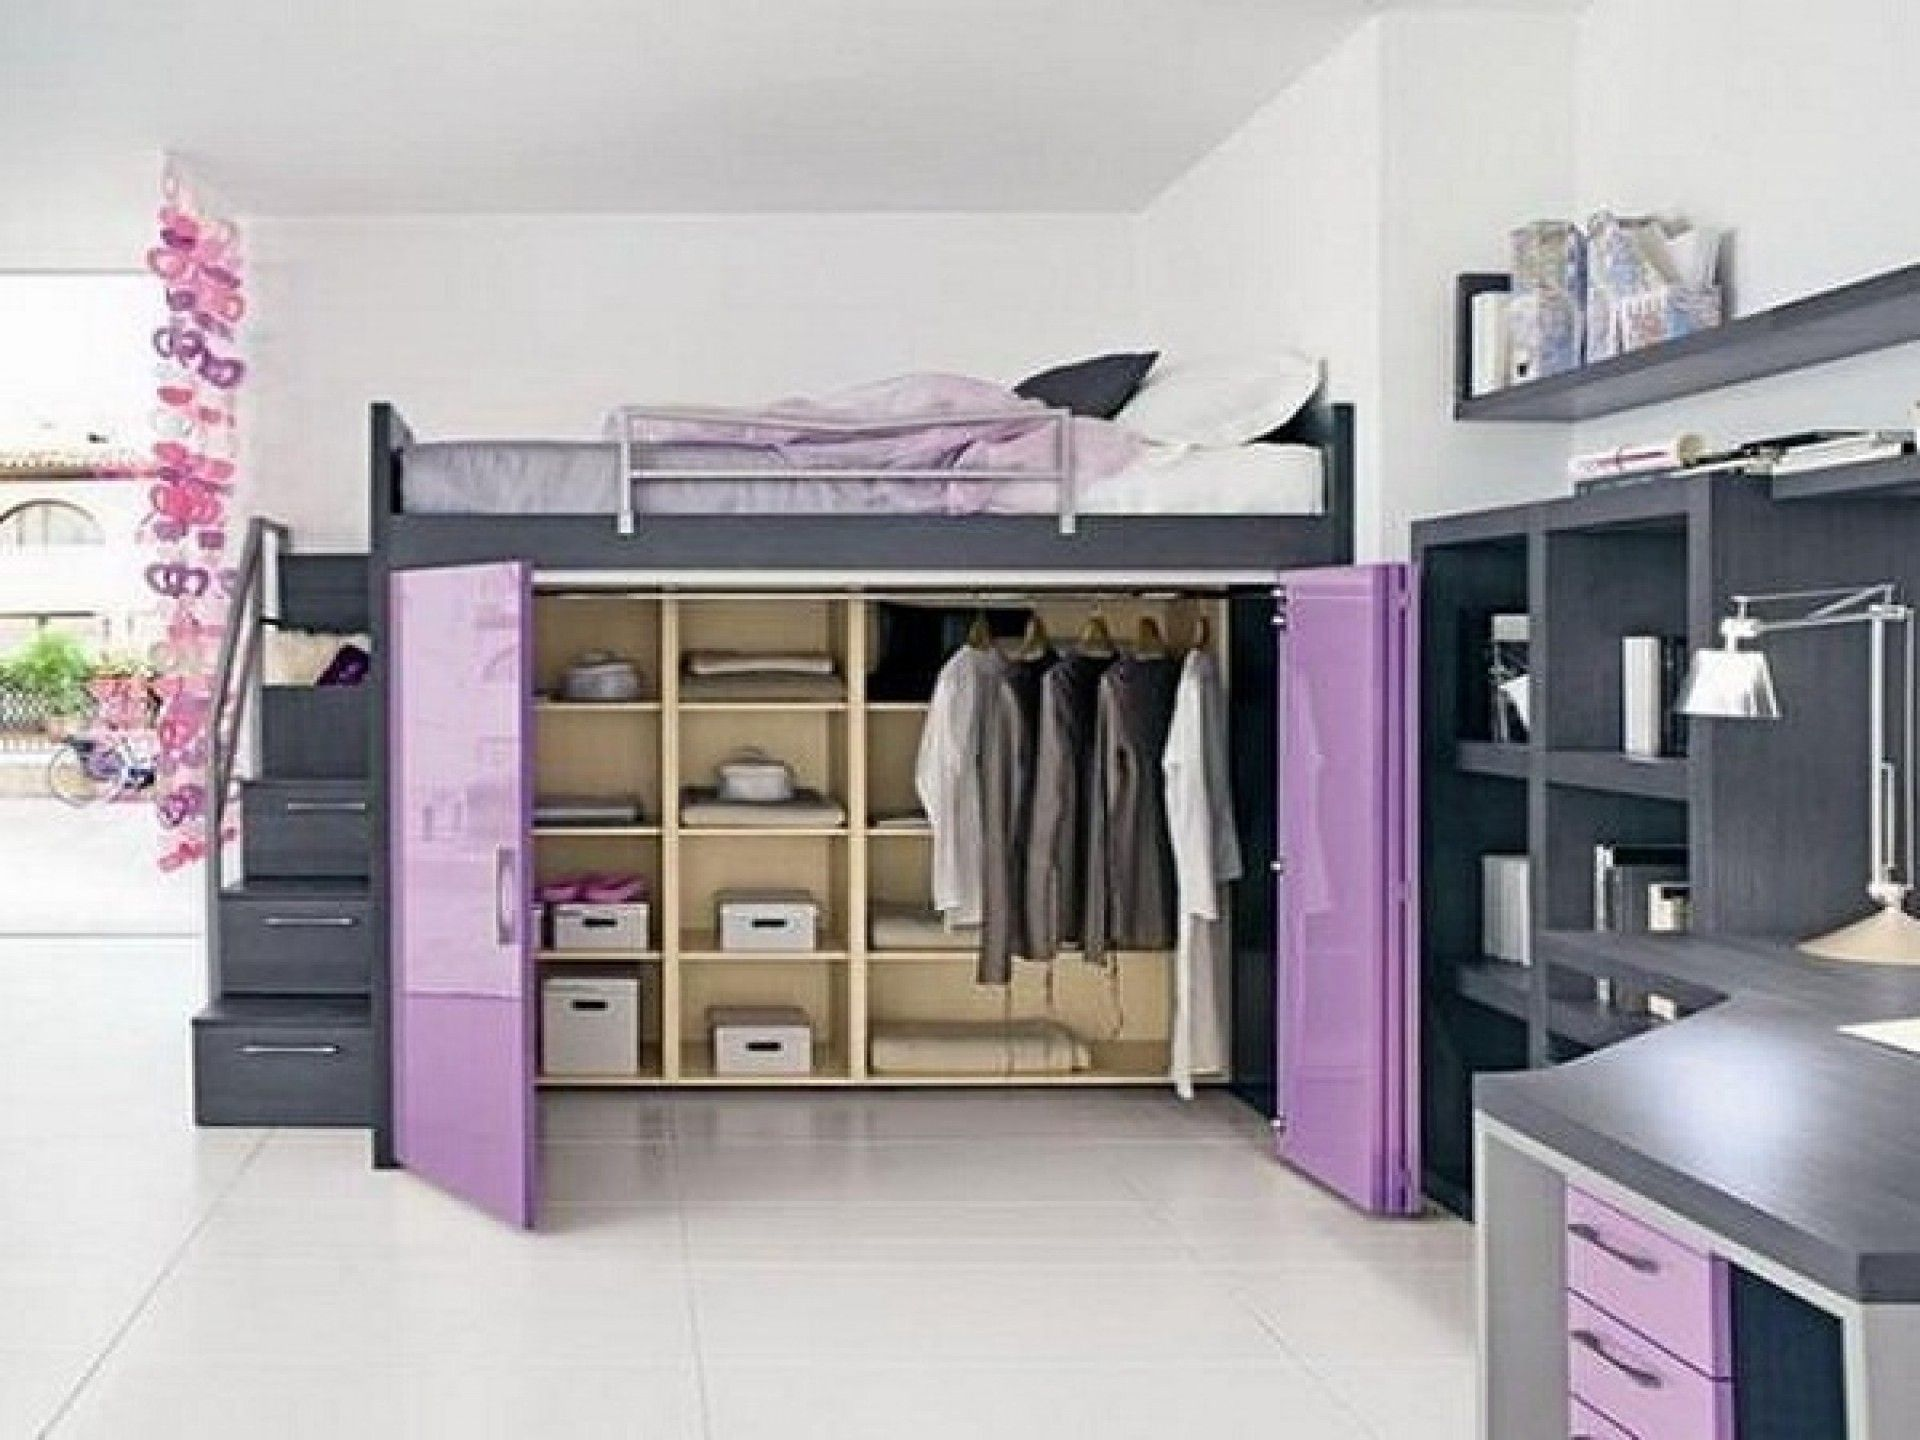 How To Design Small Bedroom With Creative Bunk Beds For Teenage Girls Ideas Affordable Bunk Beds For Teenage Girls Space Design Inspiration Showcasing